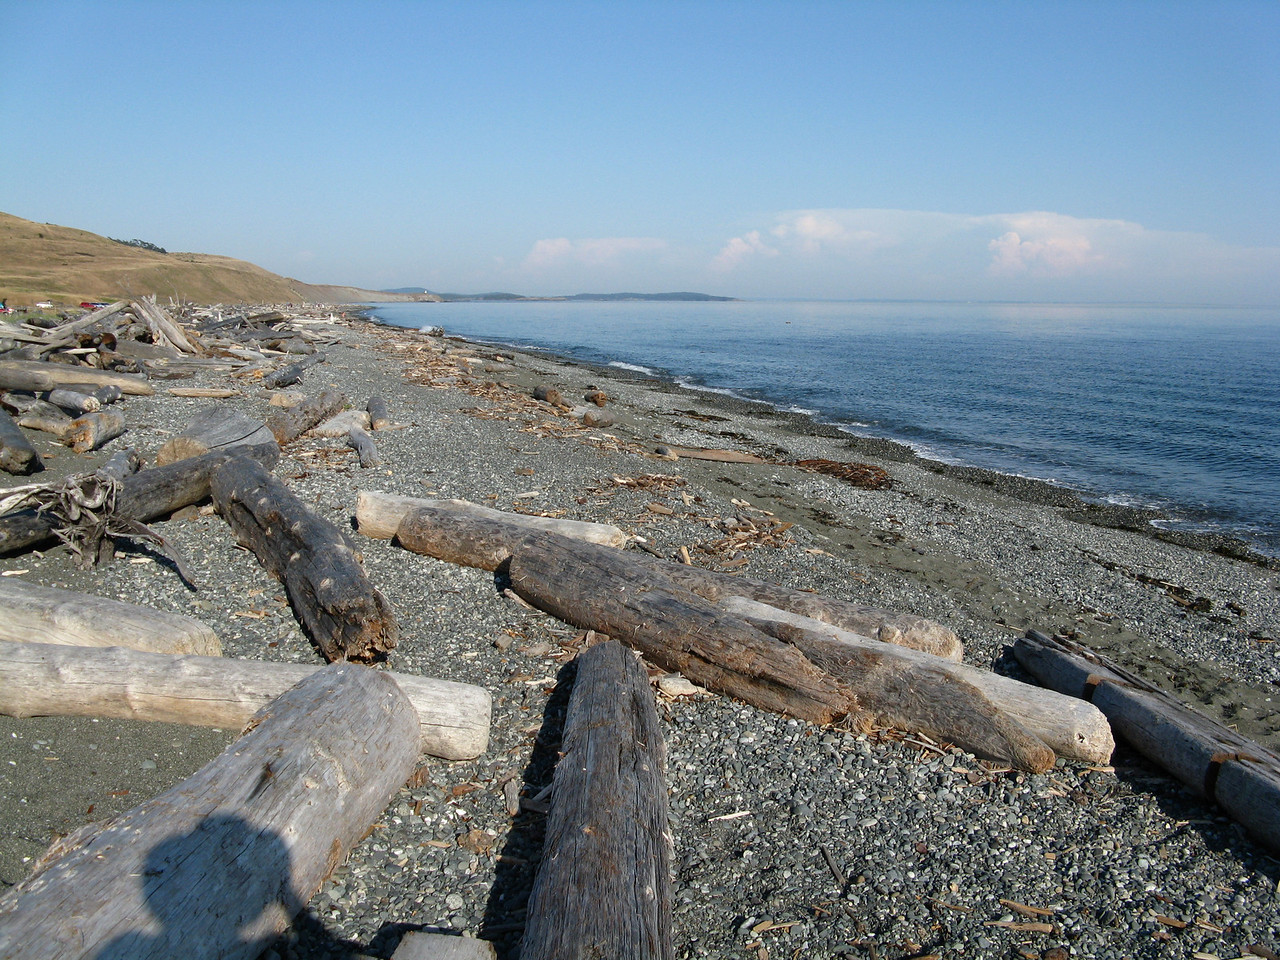 We drove down to American Camp at the southern tip of San Juan Island.  This is South Beach on the Strait of Juan de Fuca, looking southeast.